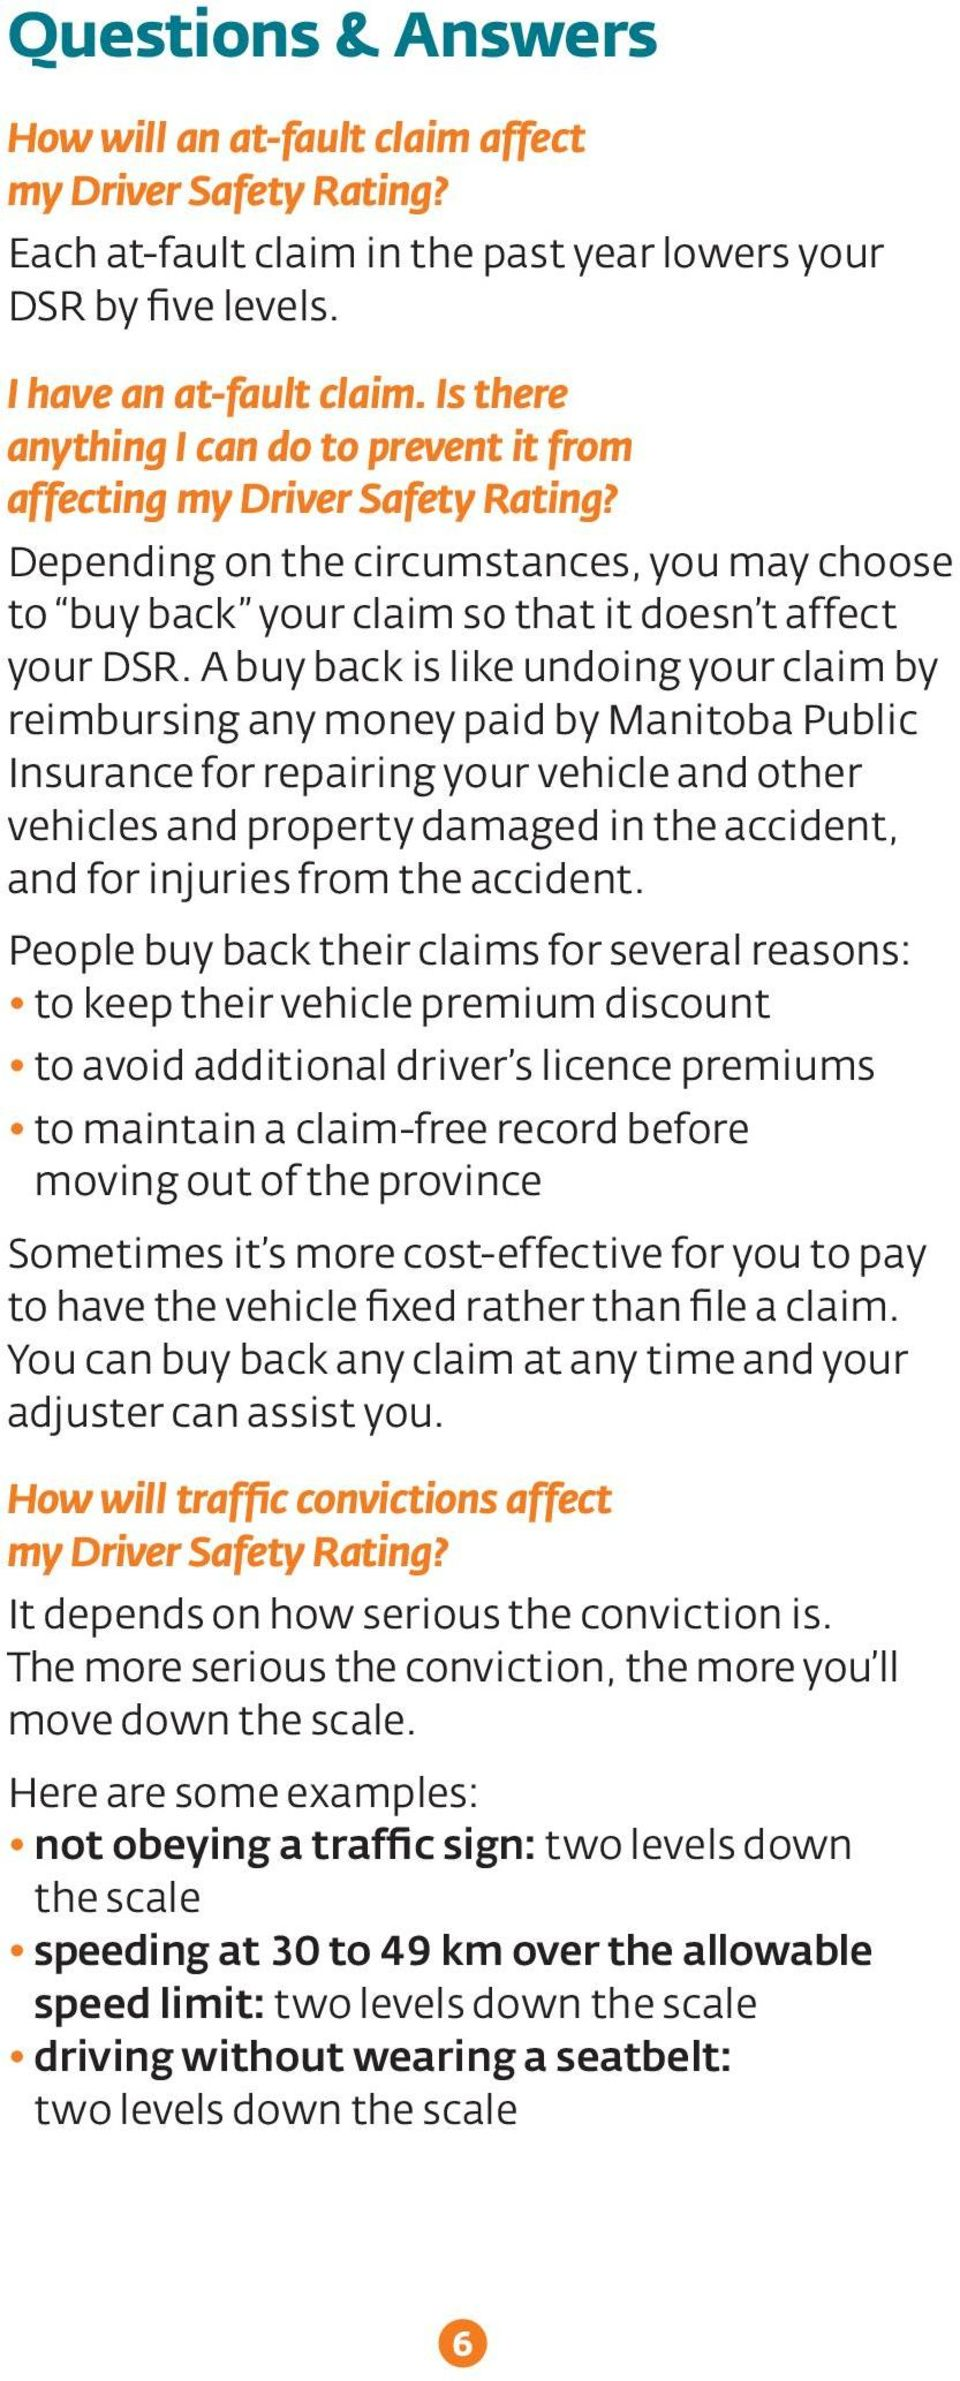 A buy back is like undoing your claim by reimbursing any money paid by Manitoba Public Insurance for repairing your vehicle and other vehicles and property damaged in the accident, and for injuries